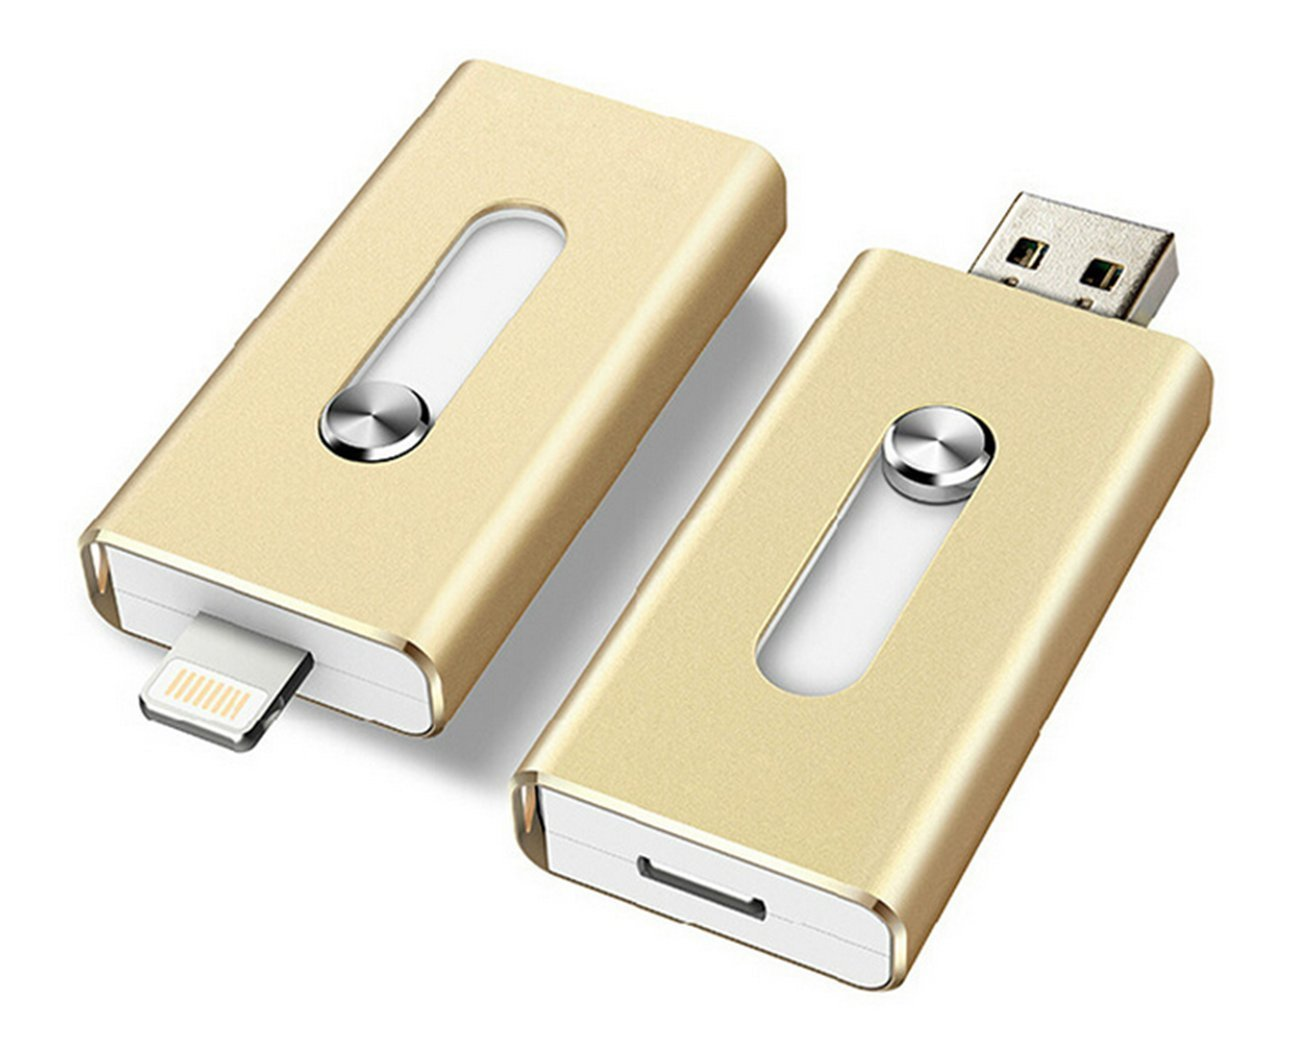 Apple Phone U Disk, Altavors 8g 16g 32g Otg USB Dual Disc Push-pull Computer Phone External Hard Drive Double Plug Apple Disk Iphone6/5 (16g Gold)